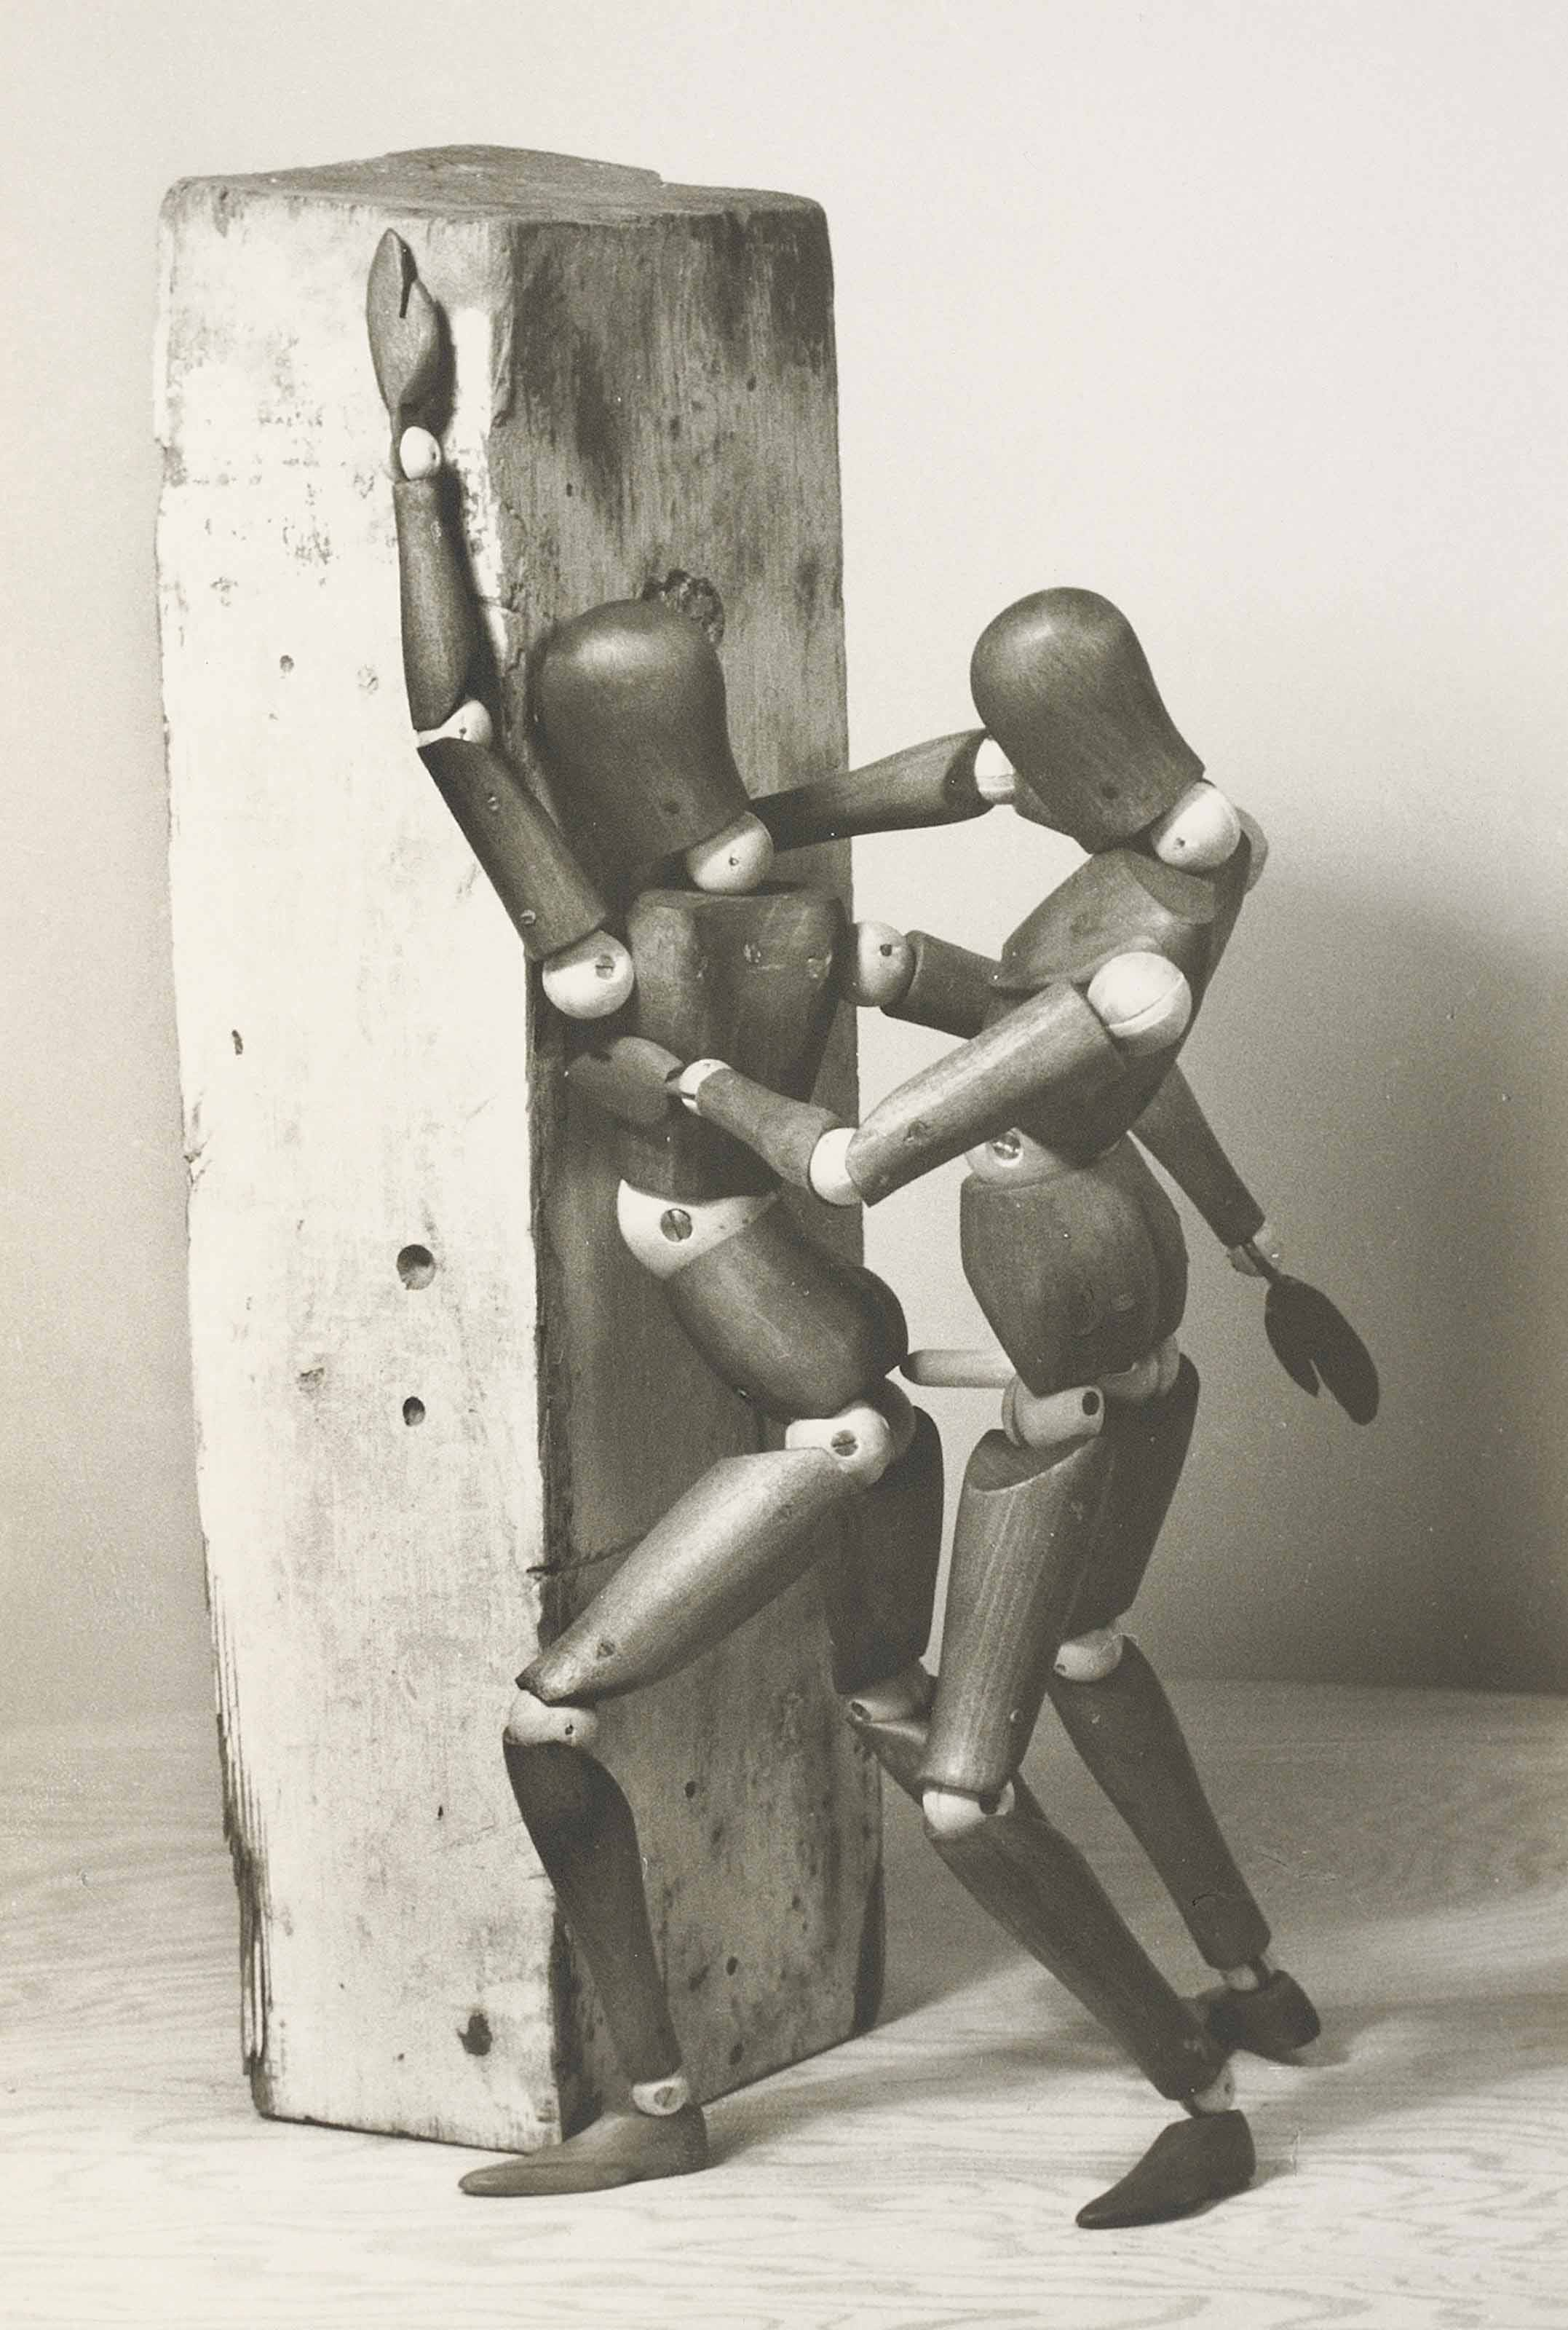 MAN RAY (1890-1976). Mr. and M